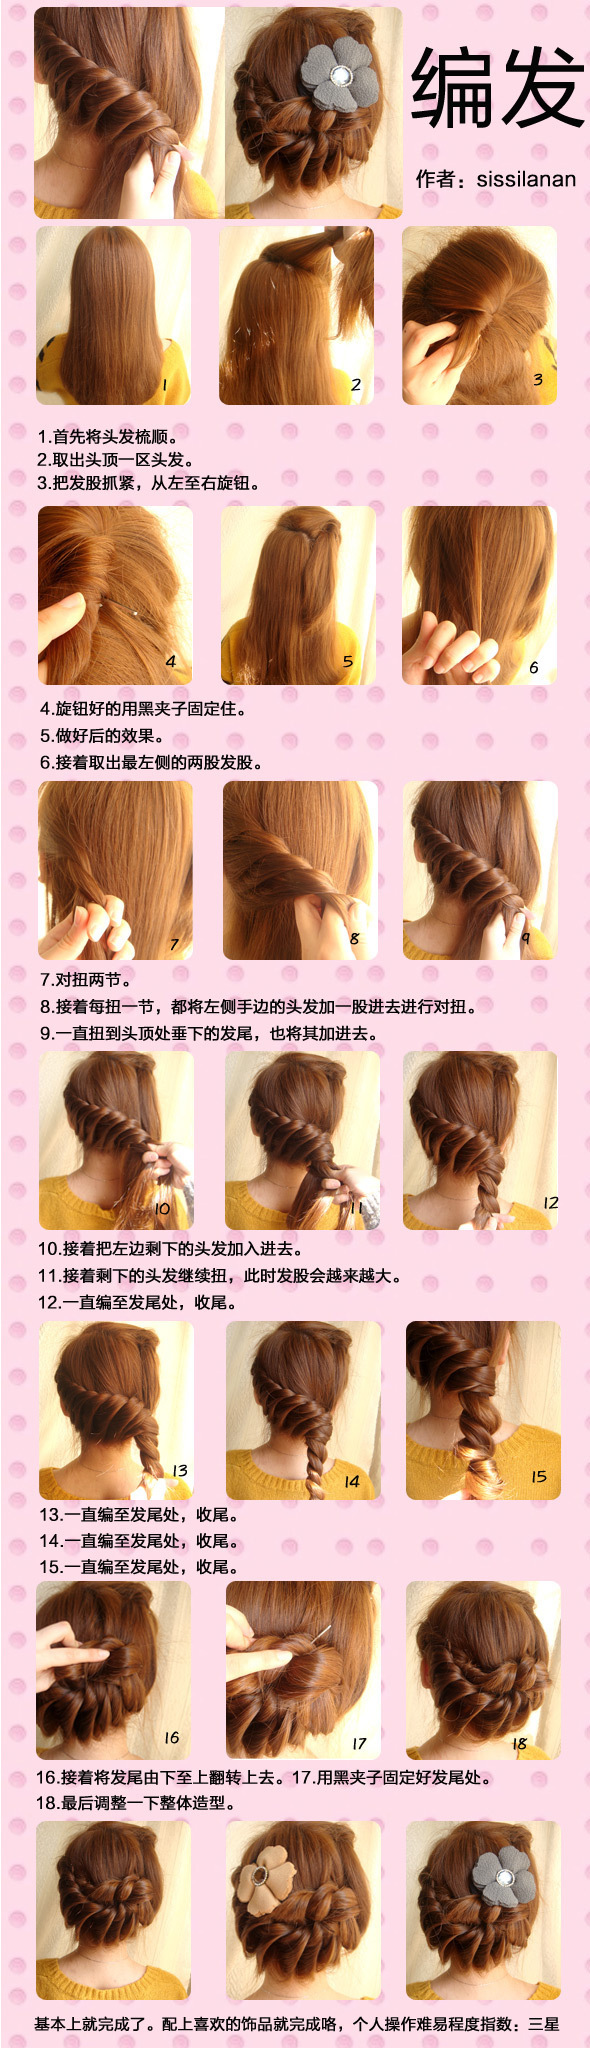 Itus in japanese but you get the idea what a beautiful updo